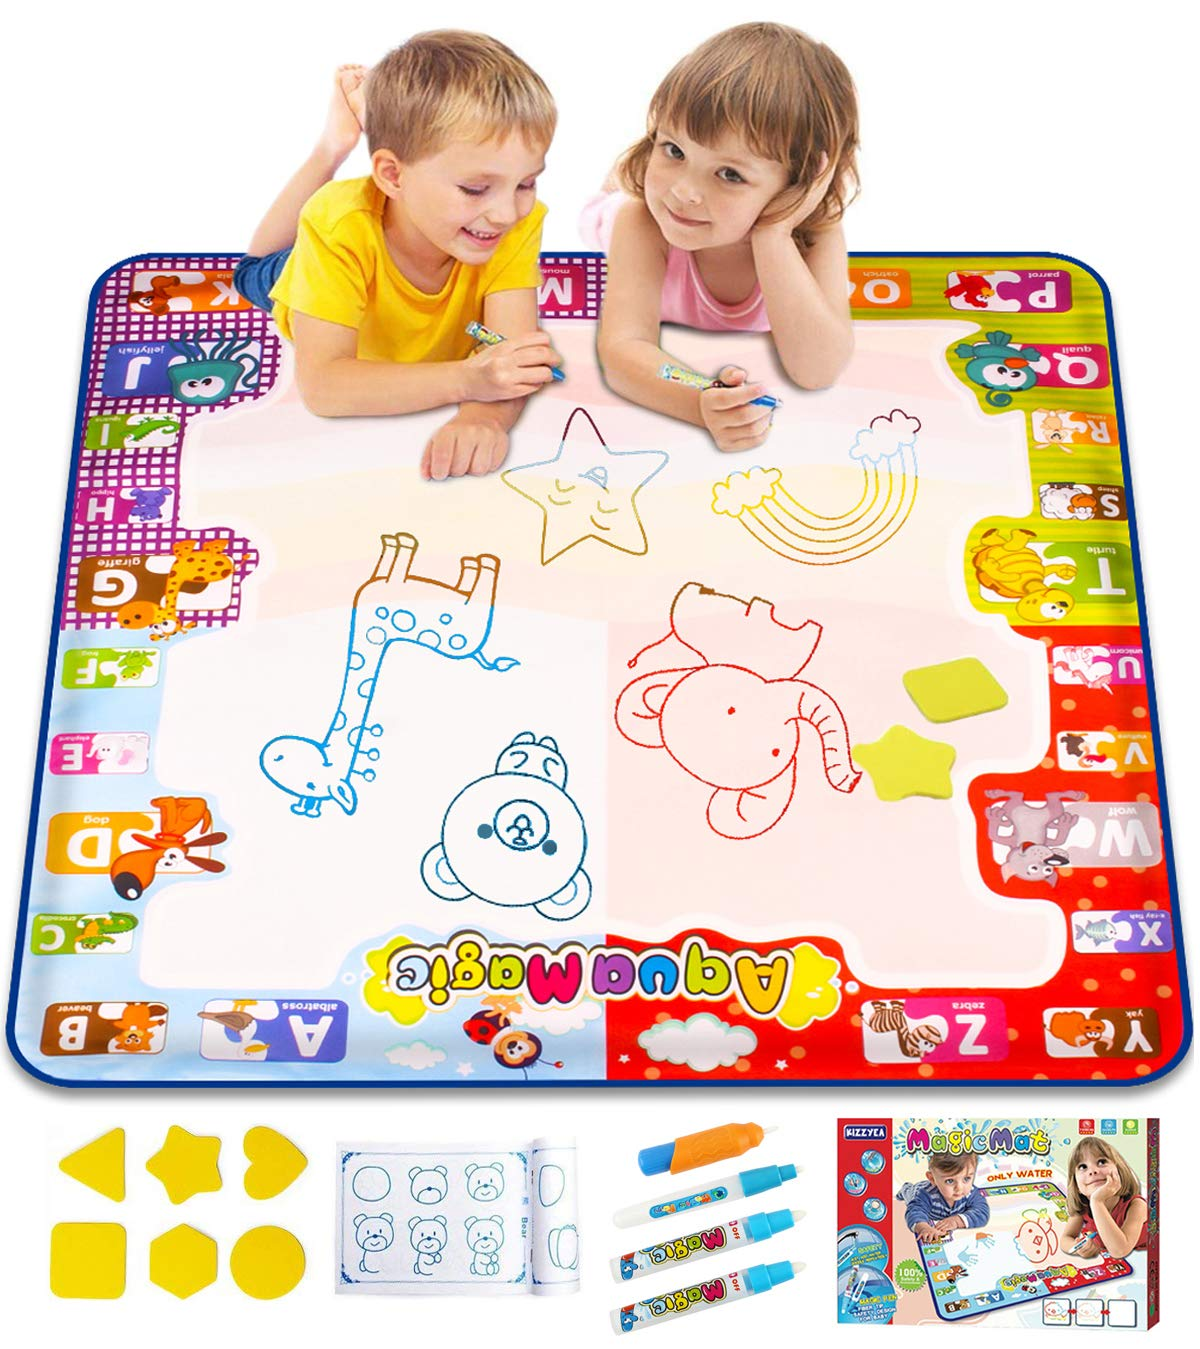 """KIZZYEA Water Doodle Mat,Kids Toys Large Aqua Drawing Mat Toddlers Painting Board Neon Colors,Gifts Girls Boys Age 2 3 4 5+ Year Old,30"""" X 30"""",4 Pens,Drawing Molds Booklet Included"""